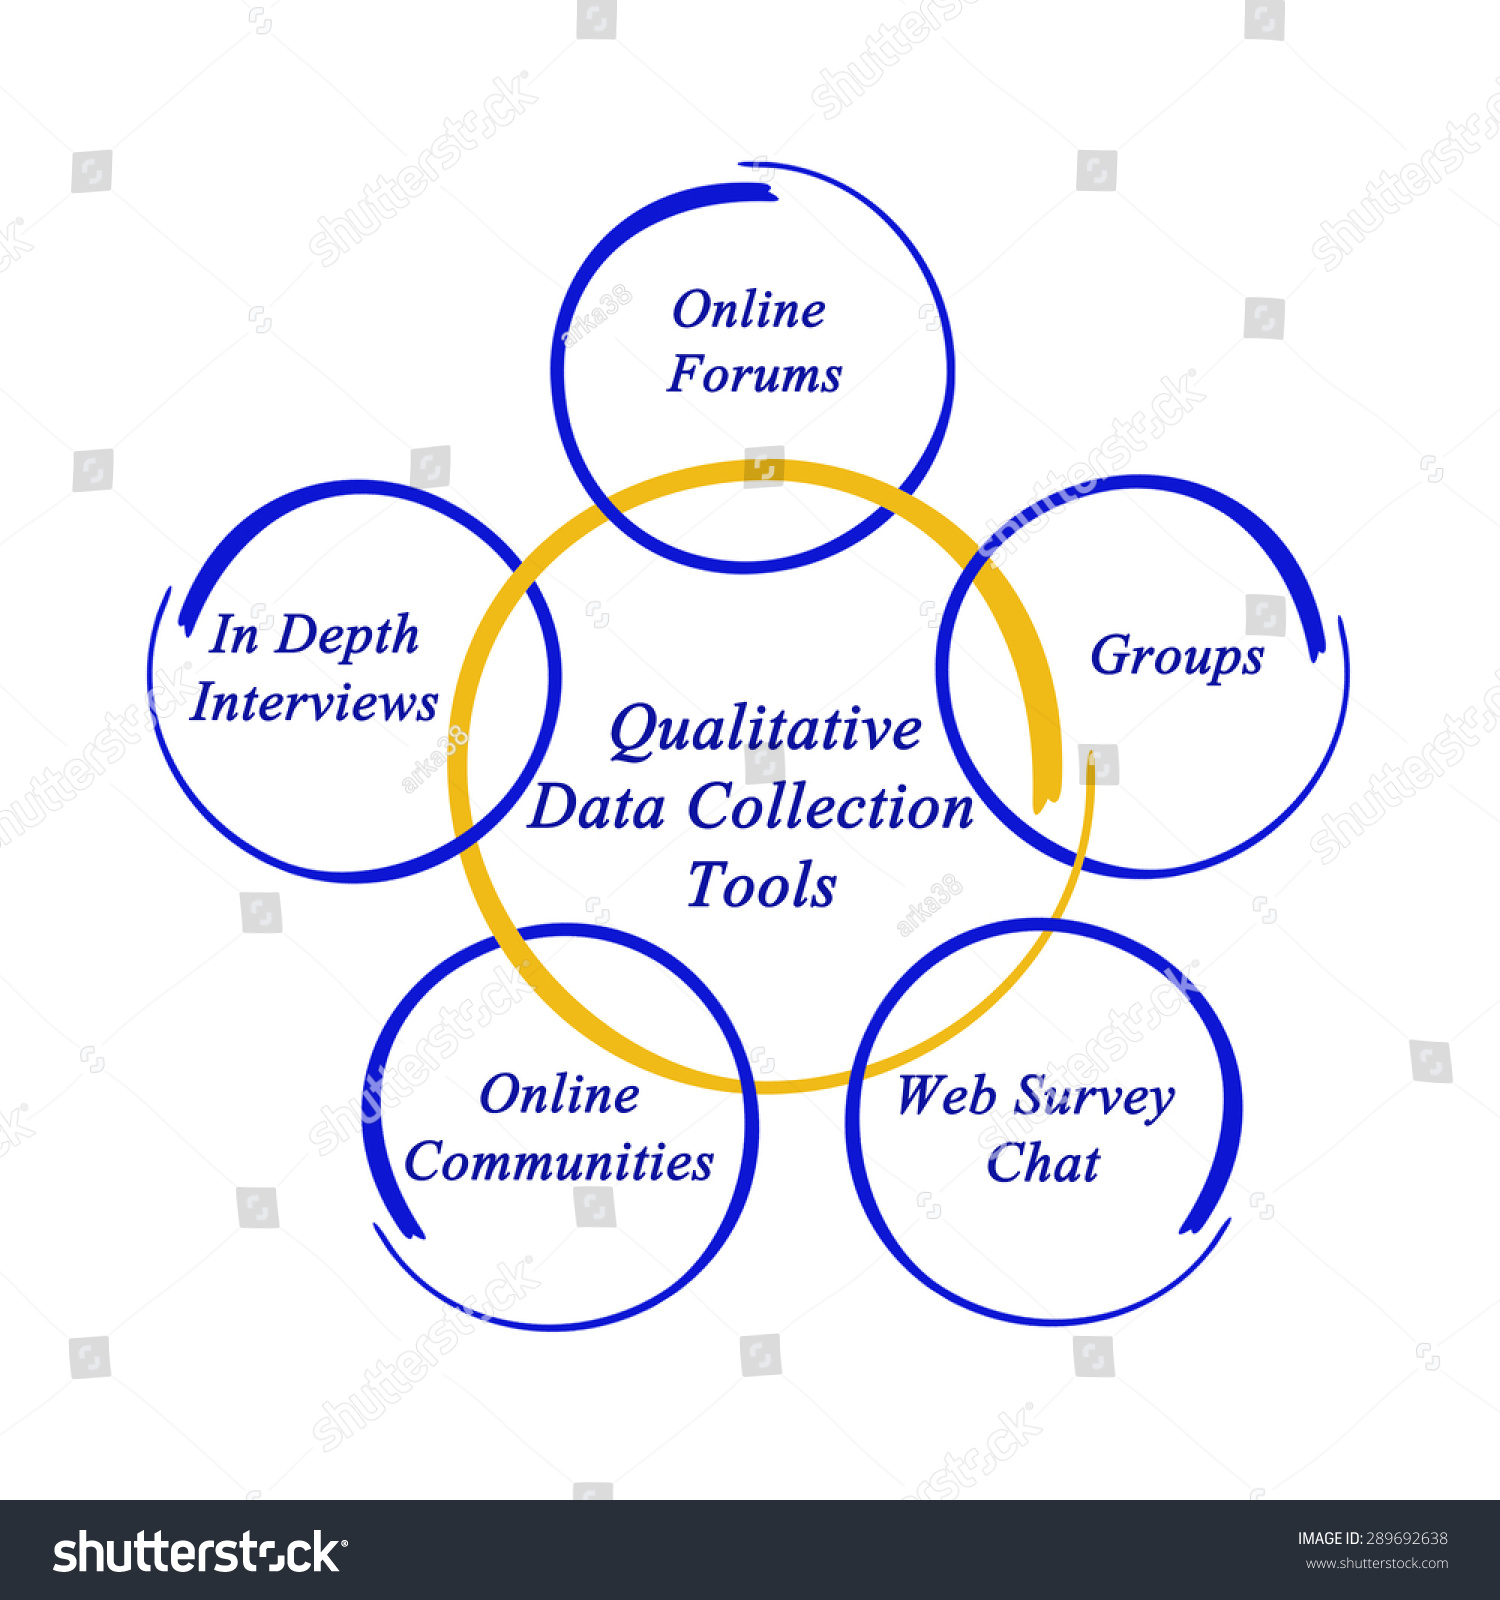 data collection tools for qualitative research